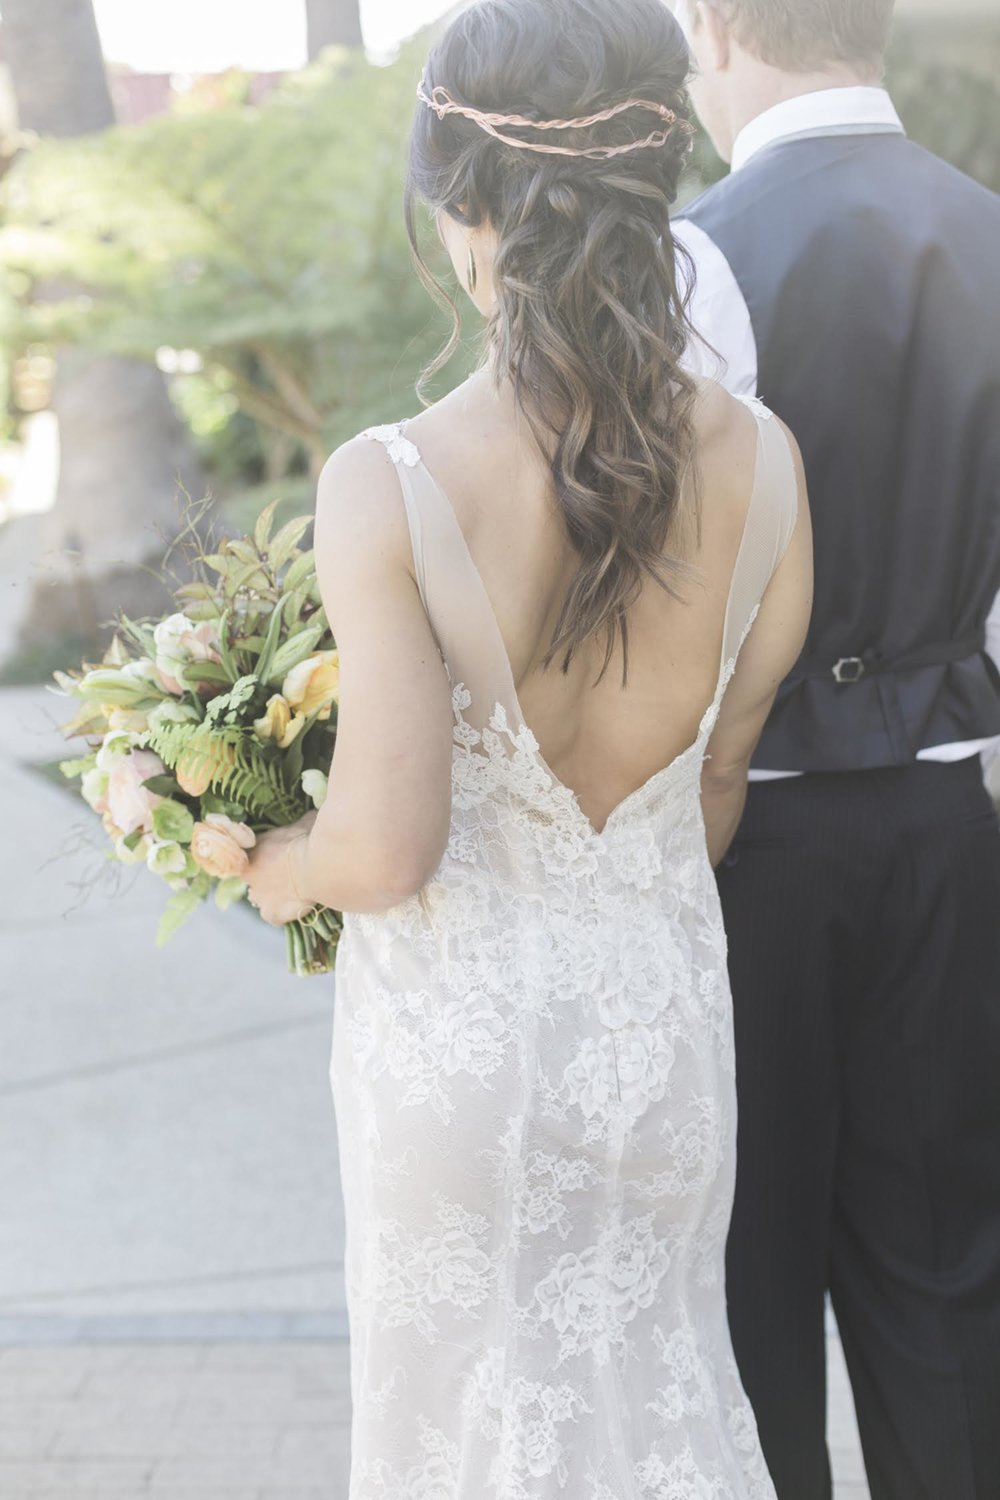 santabarbarawedding.com | Molly + Co Photography | Santa Barbara Wedding Planning and Inspiration Blog